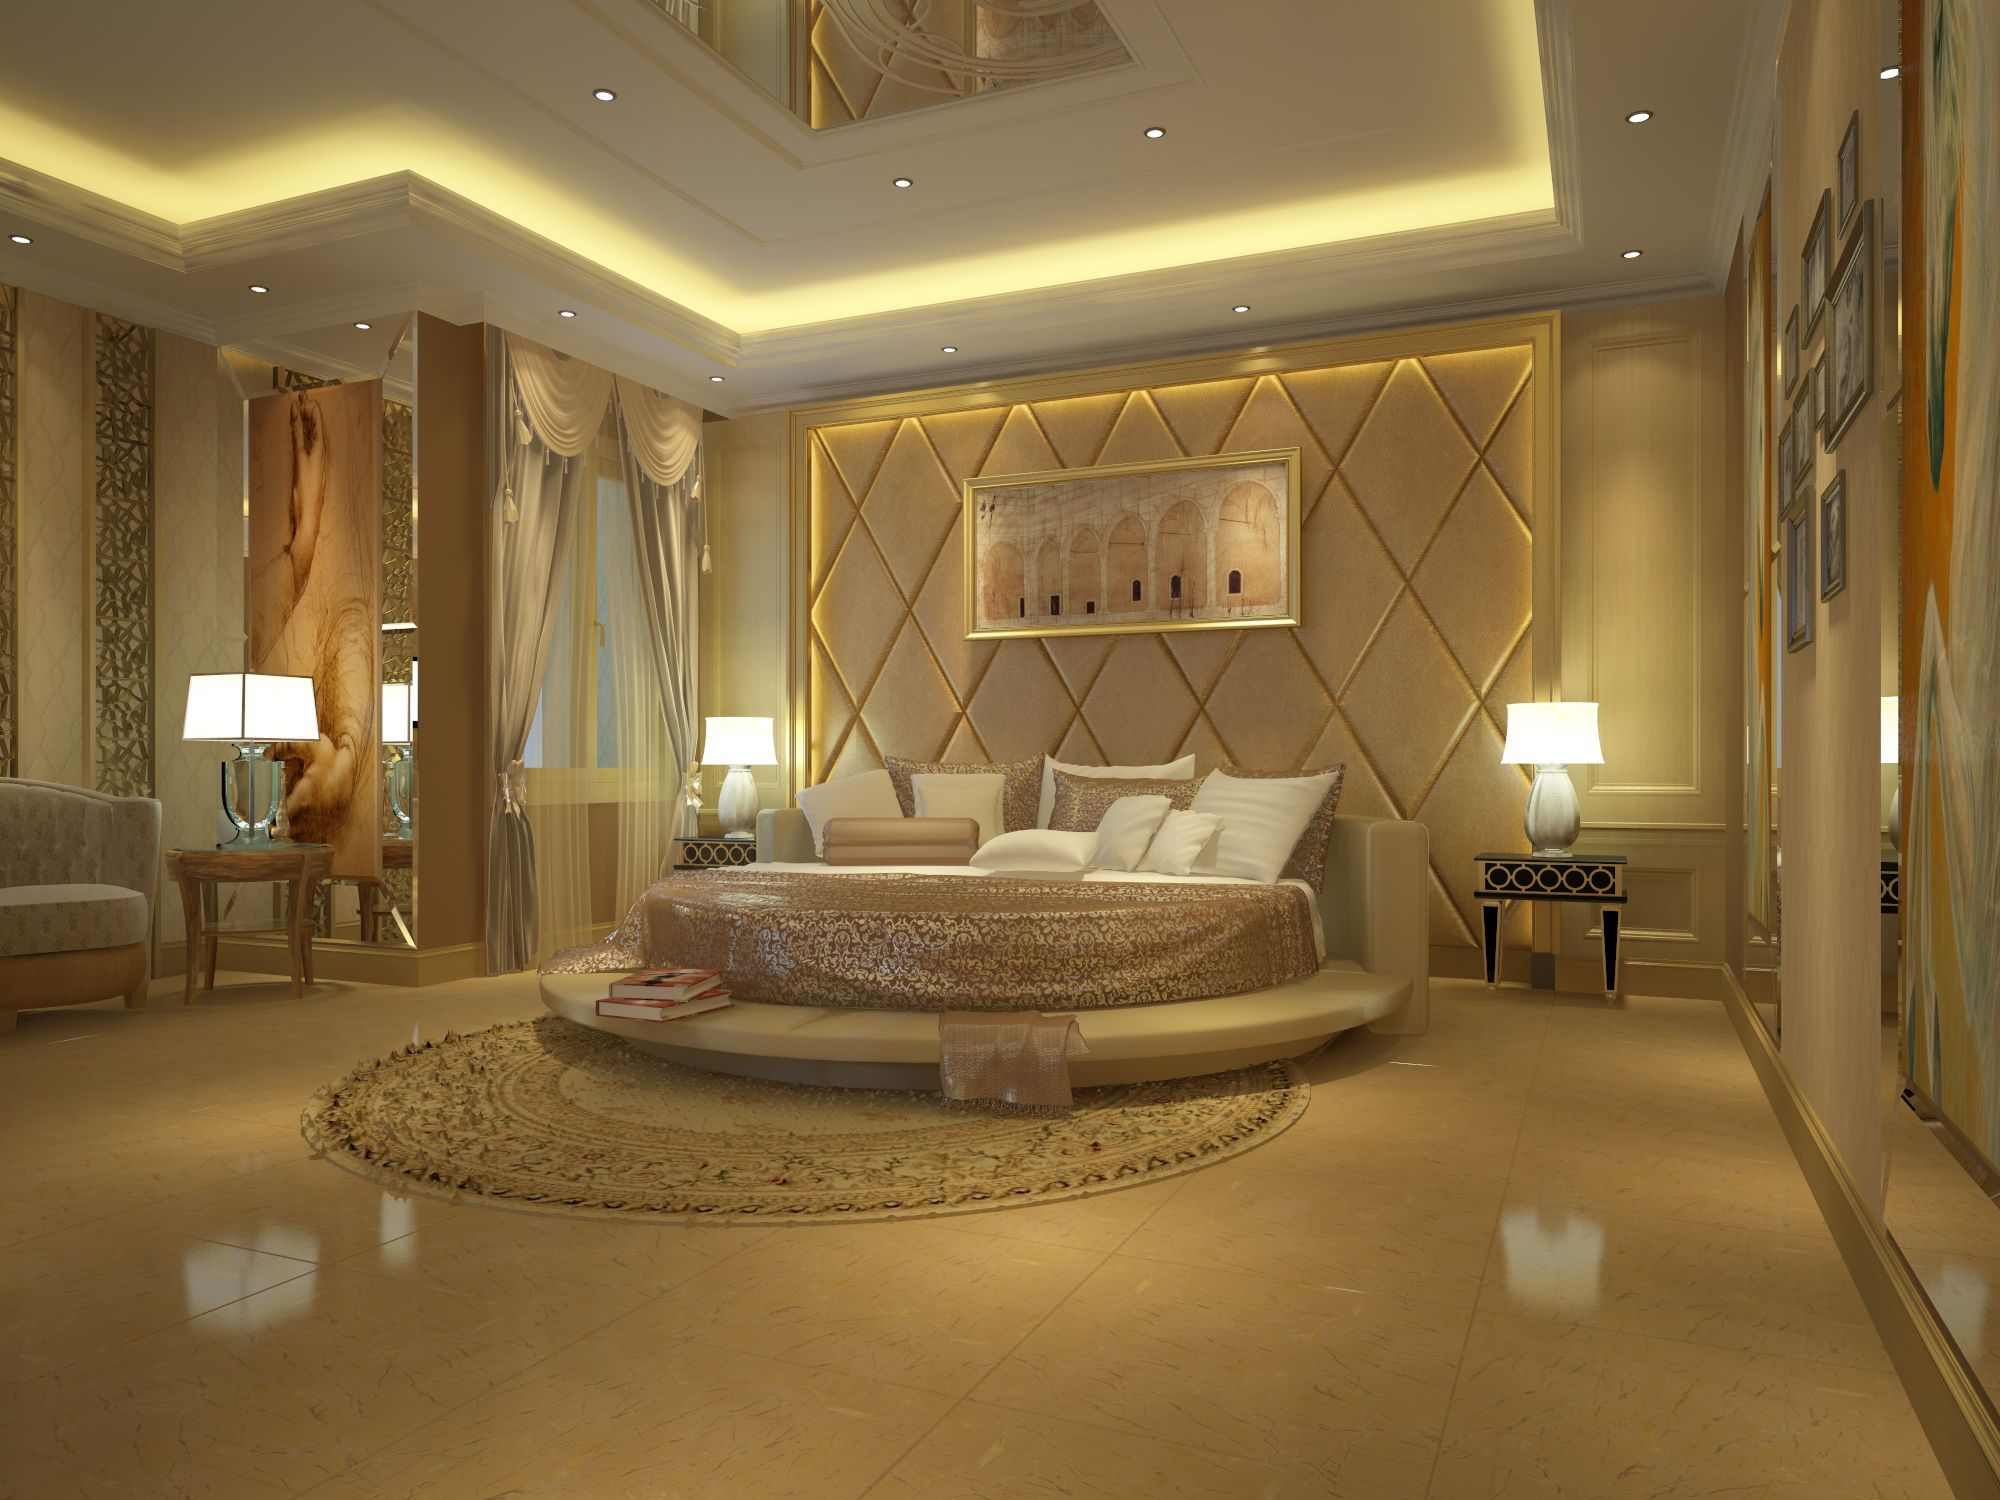 Master bedroom decoration - 30 Romantic Master Bedroom Designs